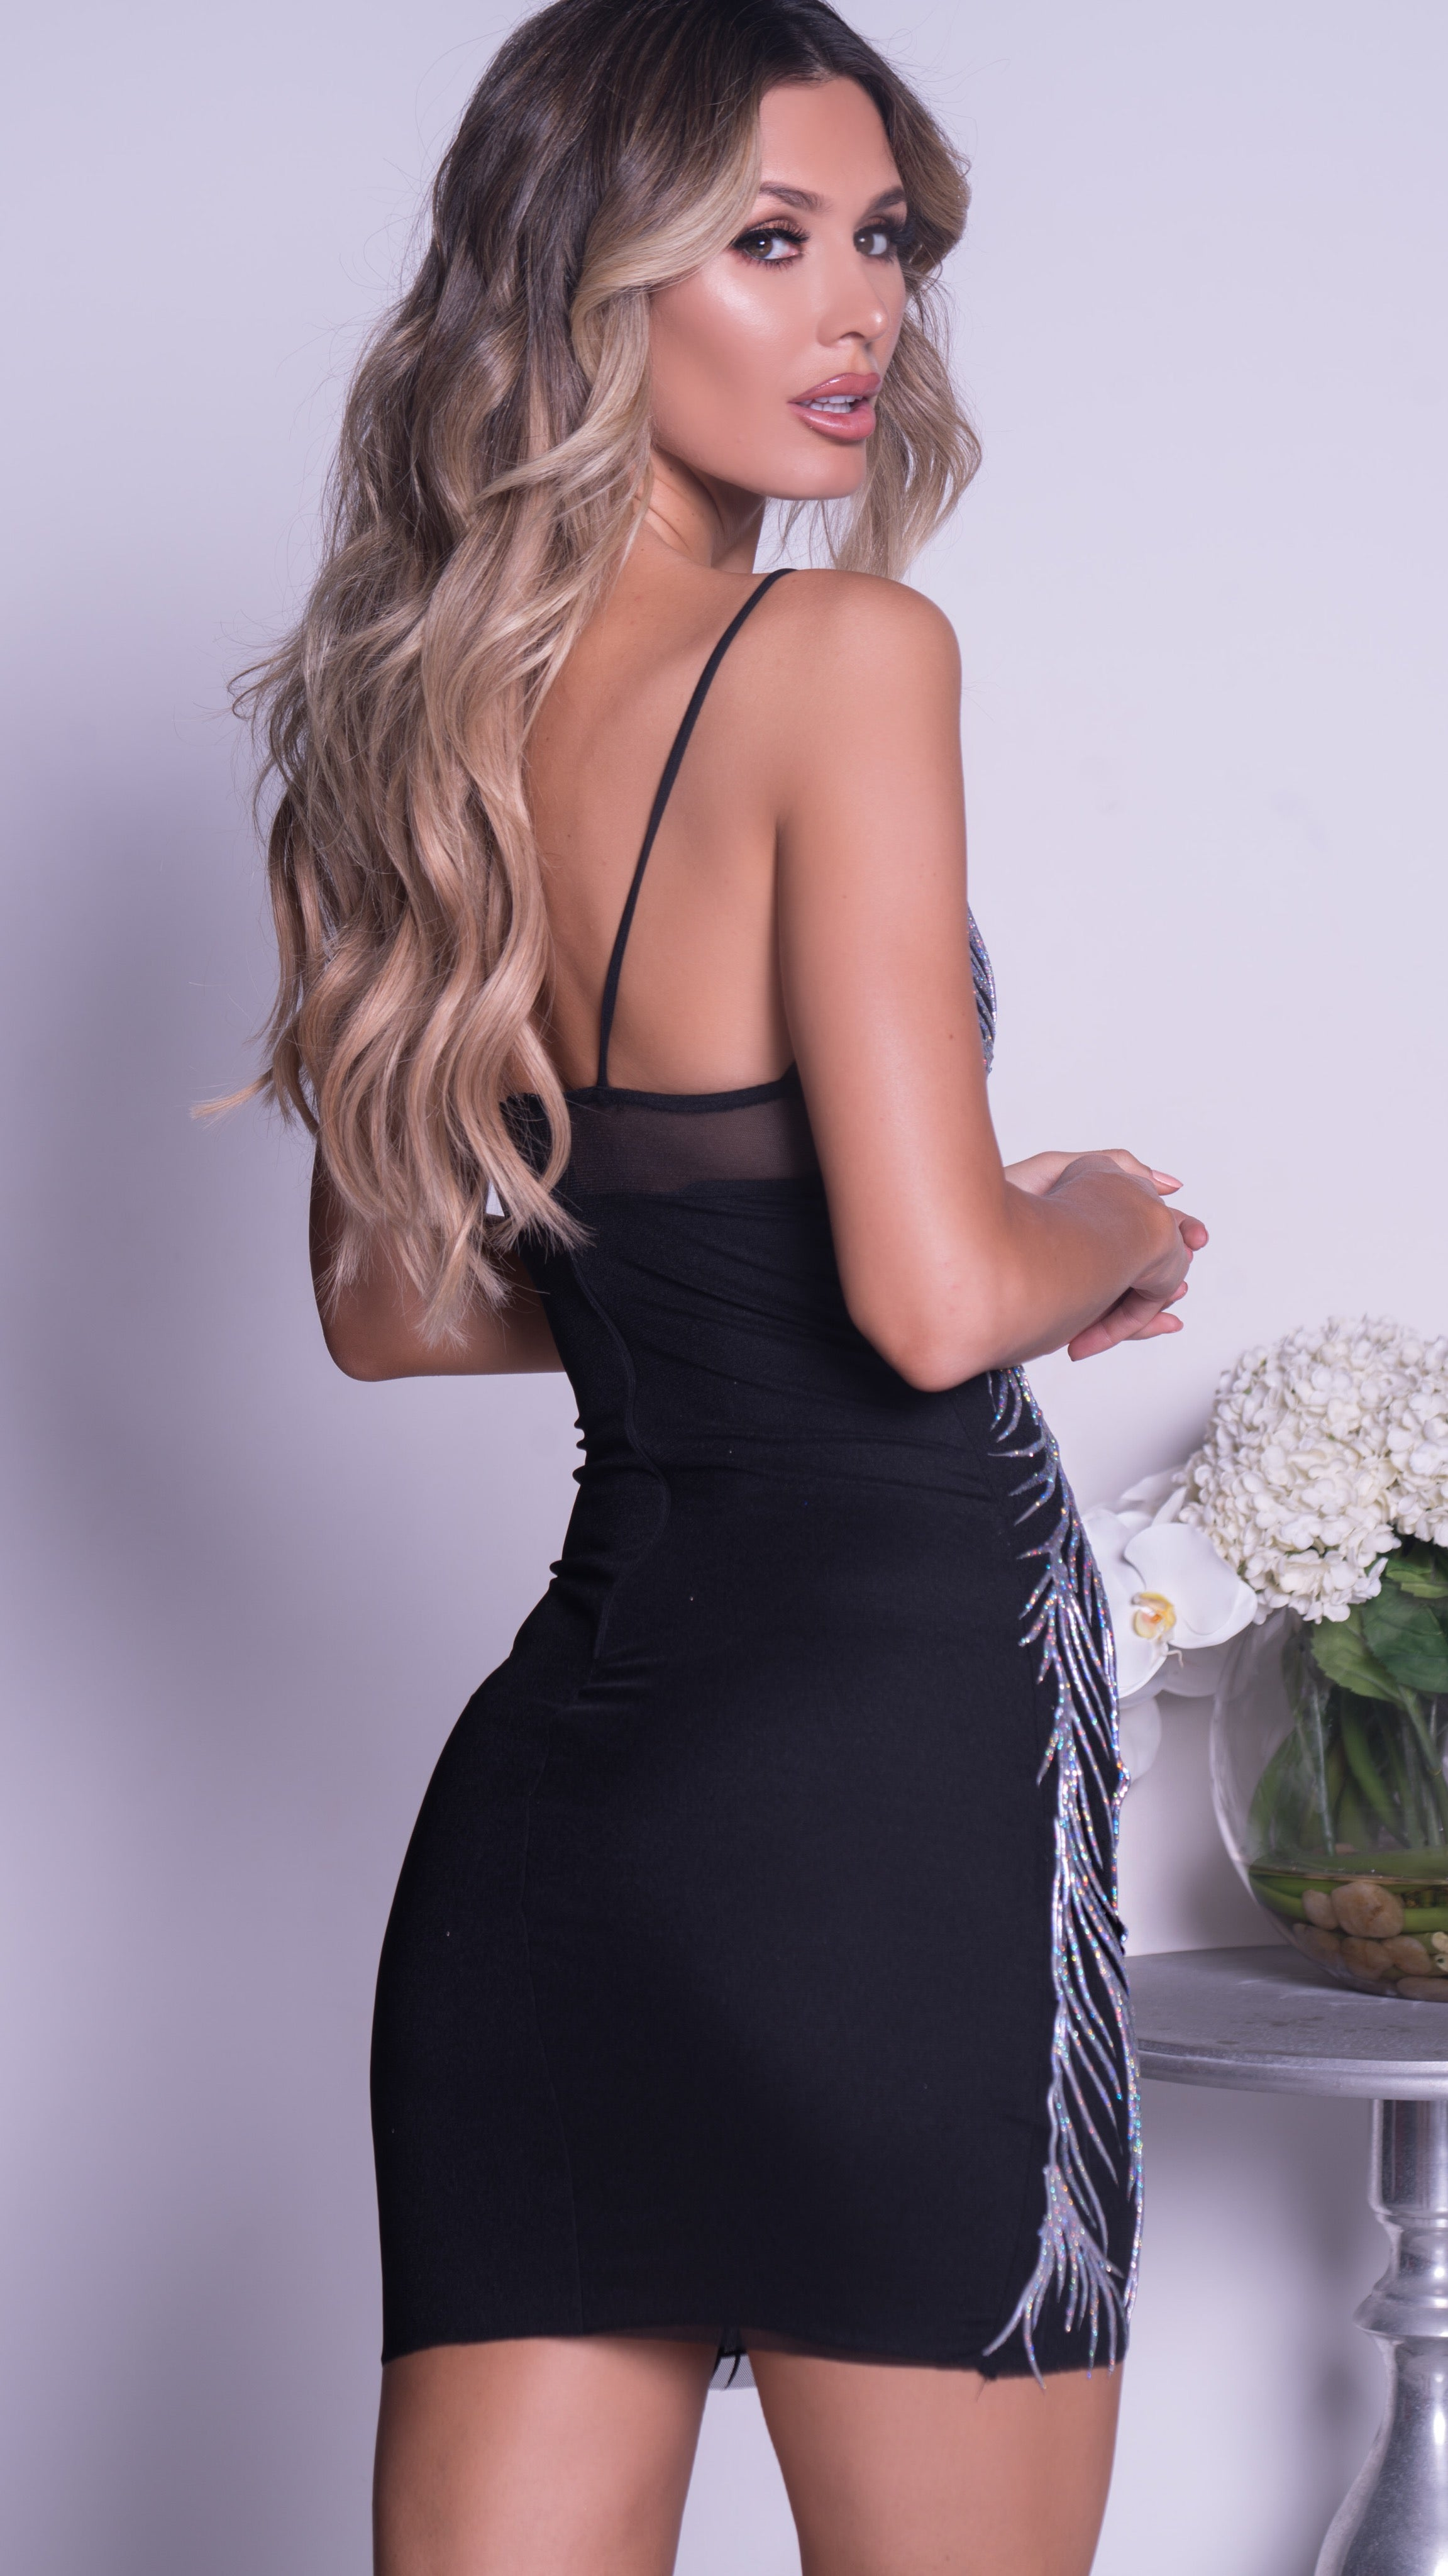 OKOLI DRESS IN BLACK WITH SILVER - MORE COLORS